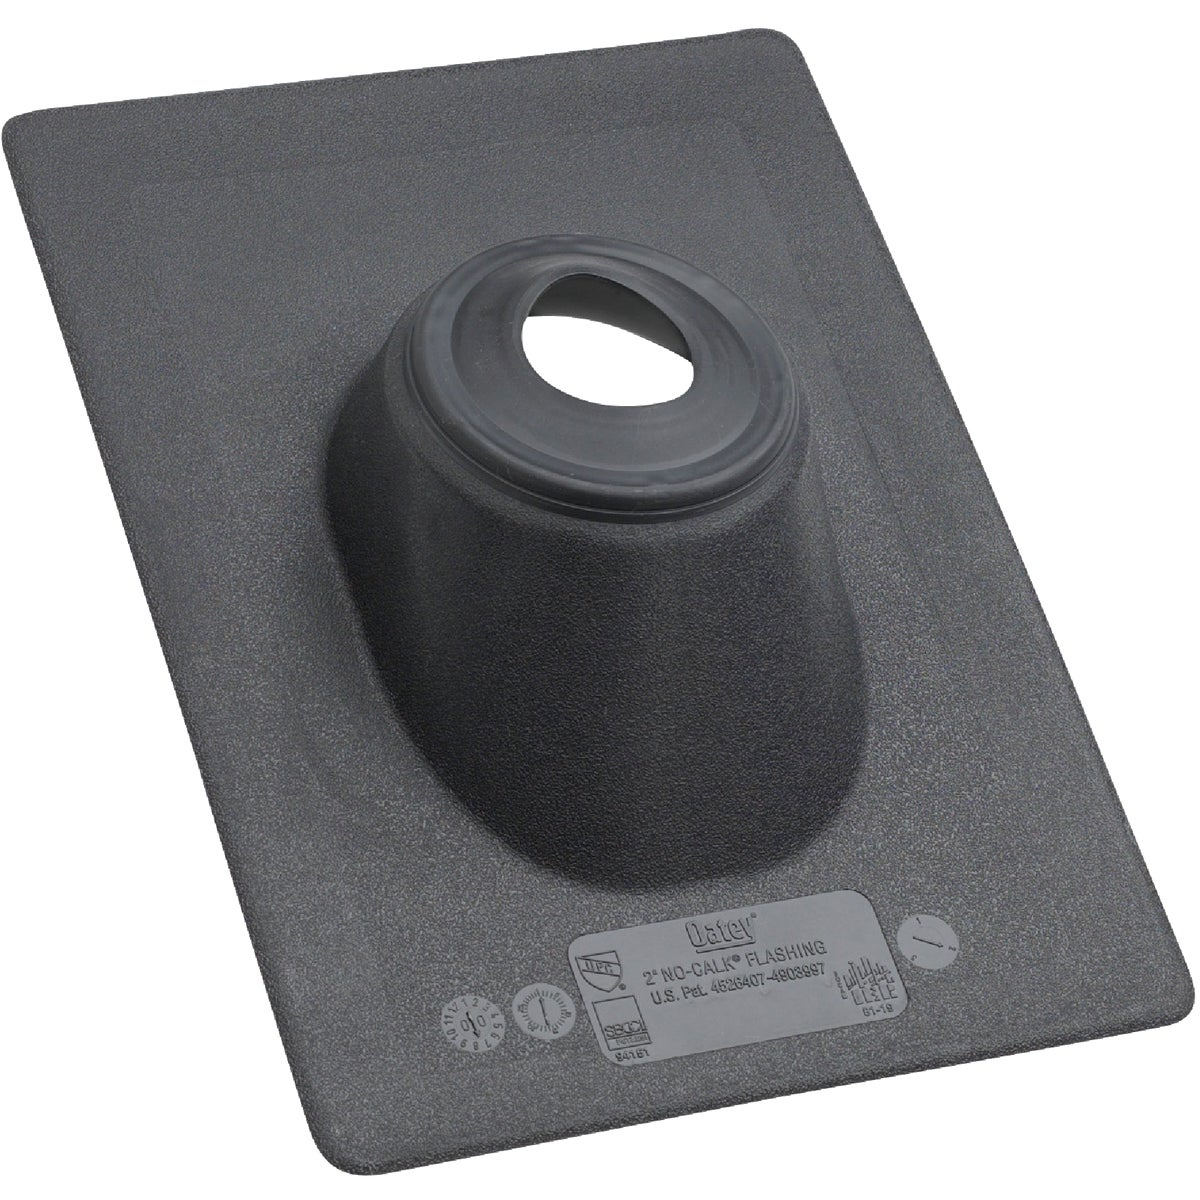 "2"" PLASTIC ROOF FLASHING - 11899 by Oatey Scs"